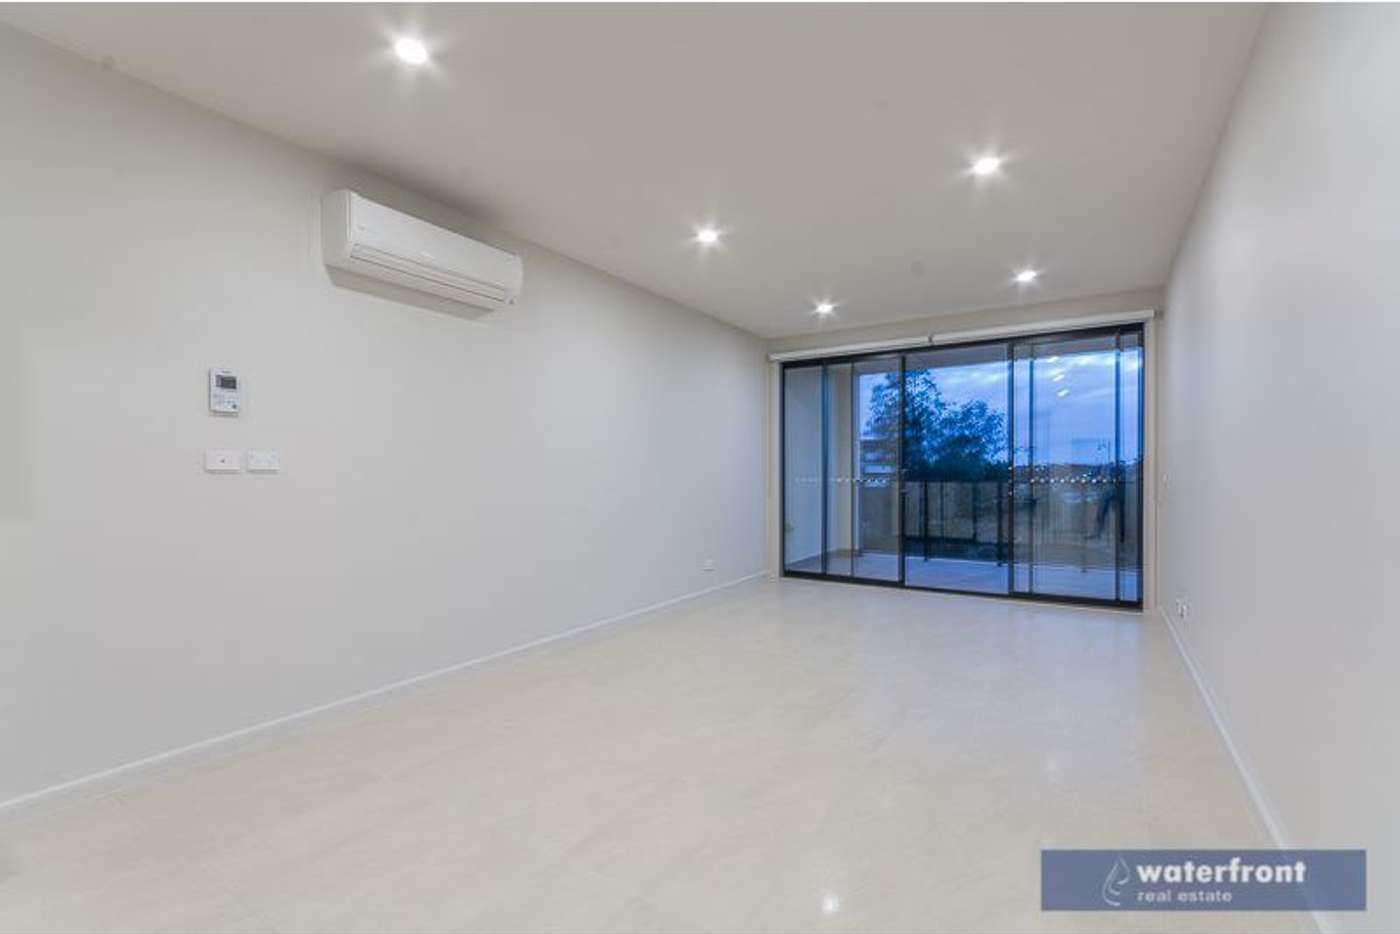 Seventh view of Homely apartment listing, 35/10 Monckton Place, Caroline Springs VIC 3023